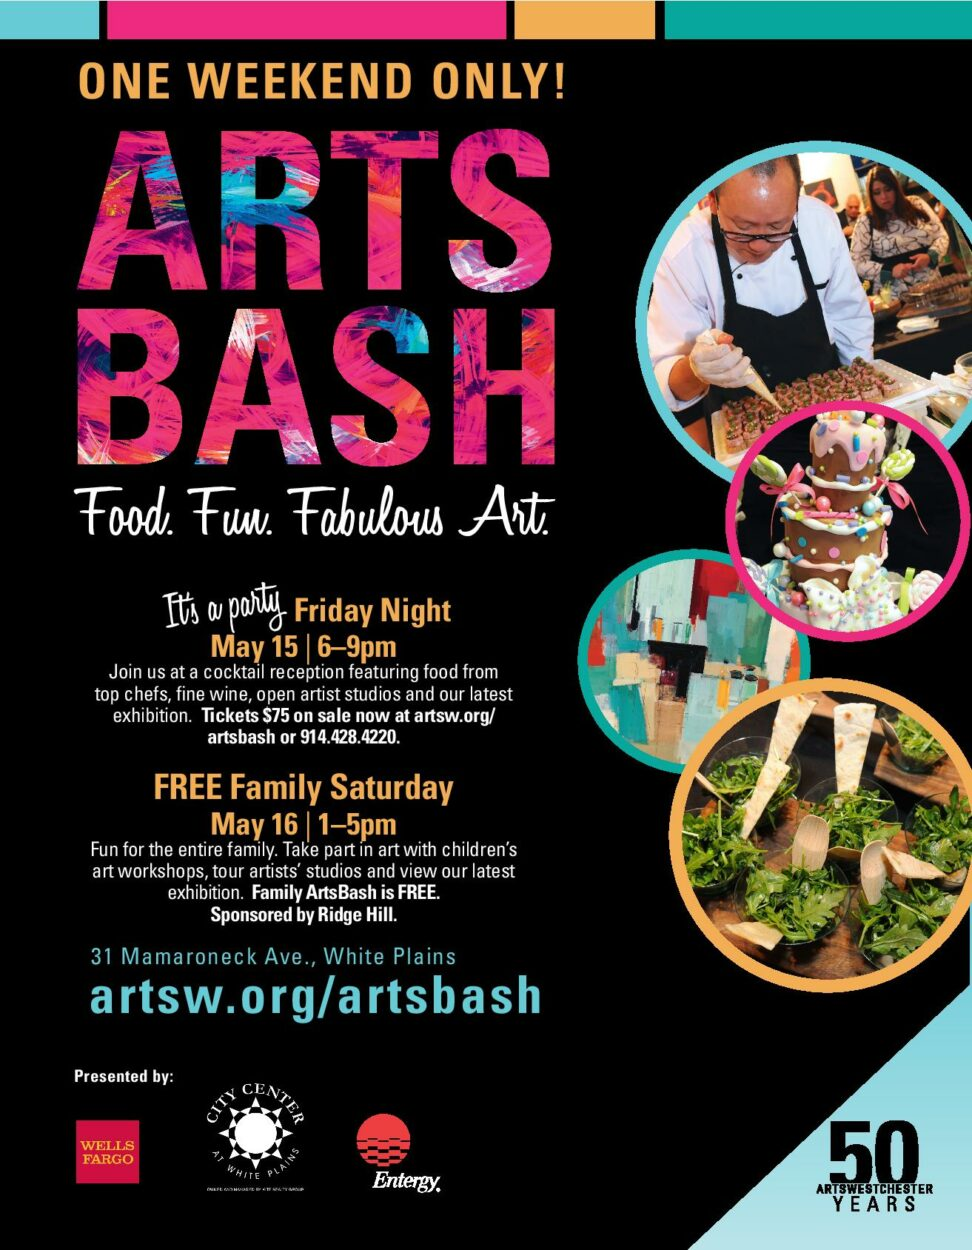 ArtsWestchester to Feature 25 Chefs To Kick-Off ARTSBASH Weekend